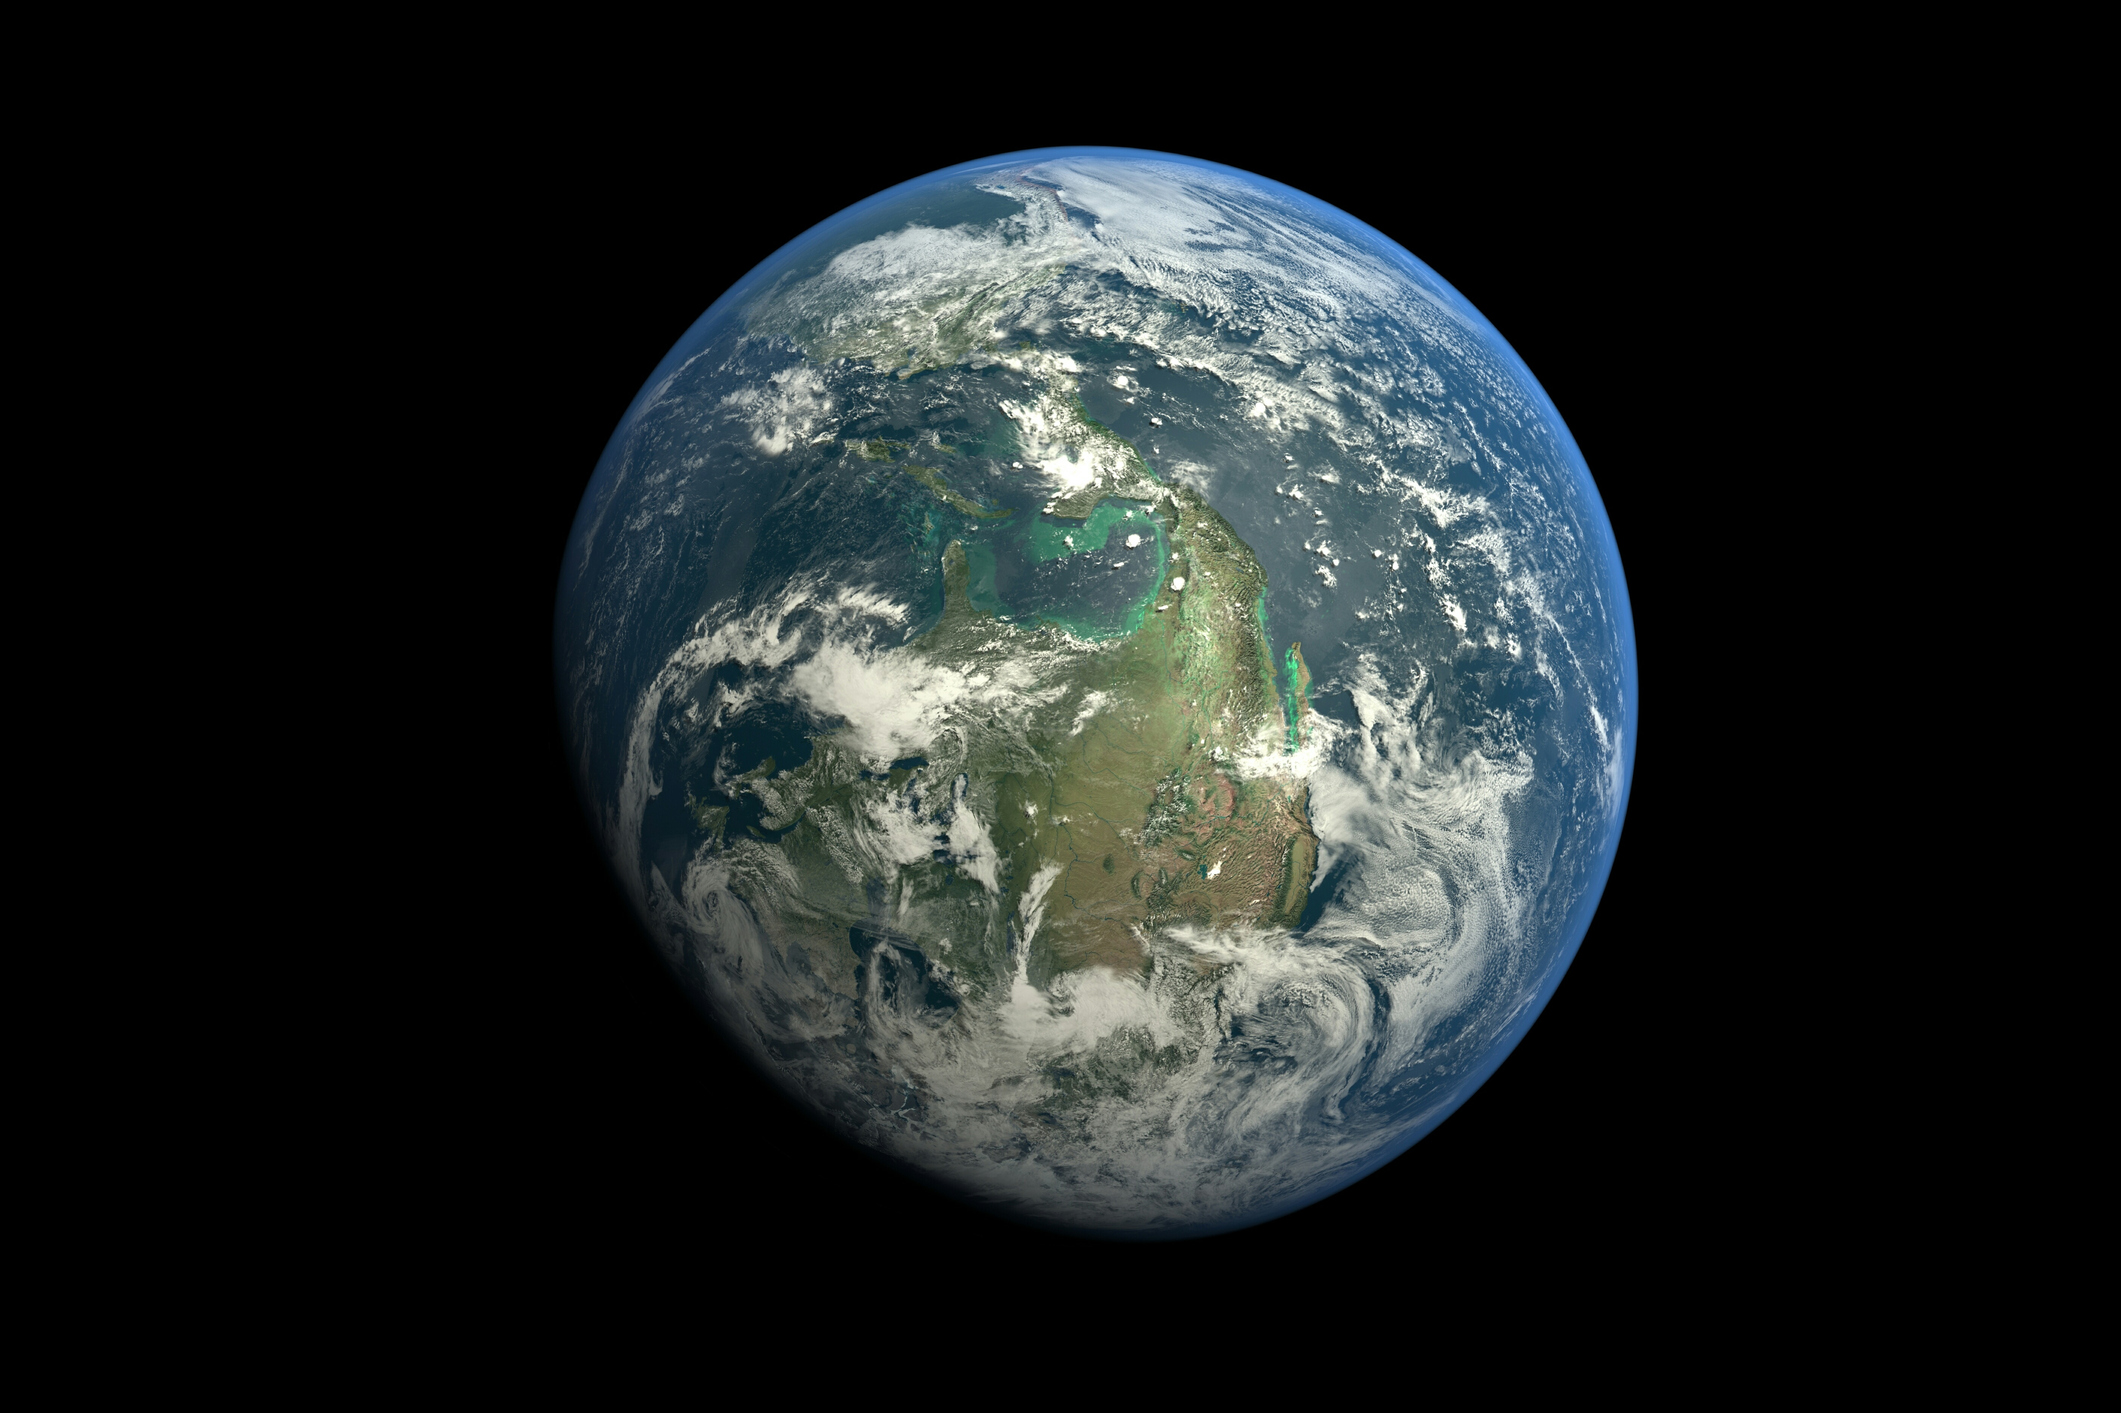 Earth's 'skin temperature test' shows undeniable evidence of global warming